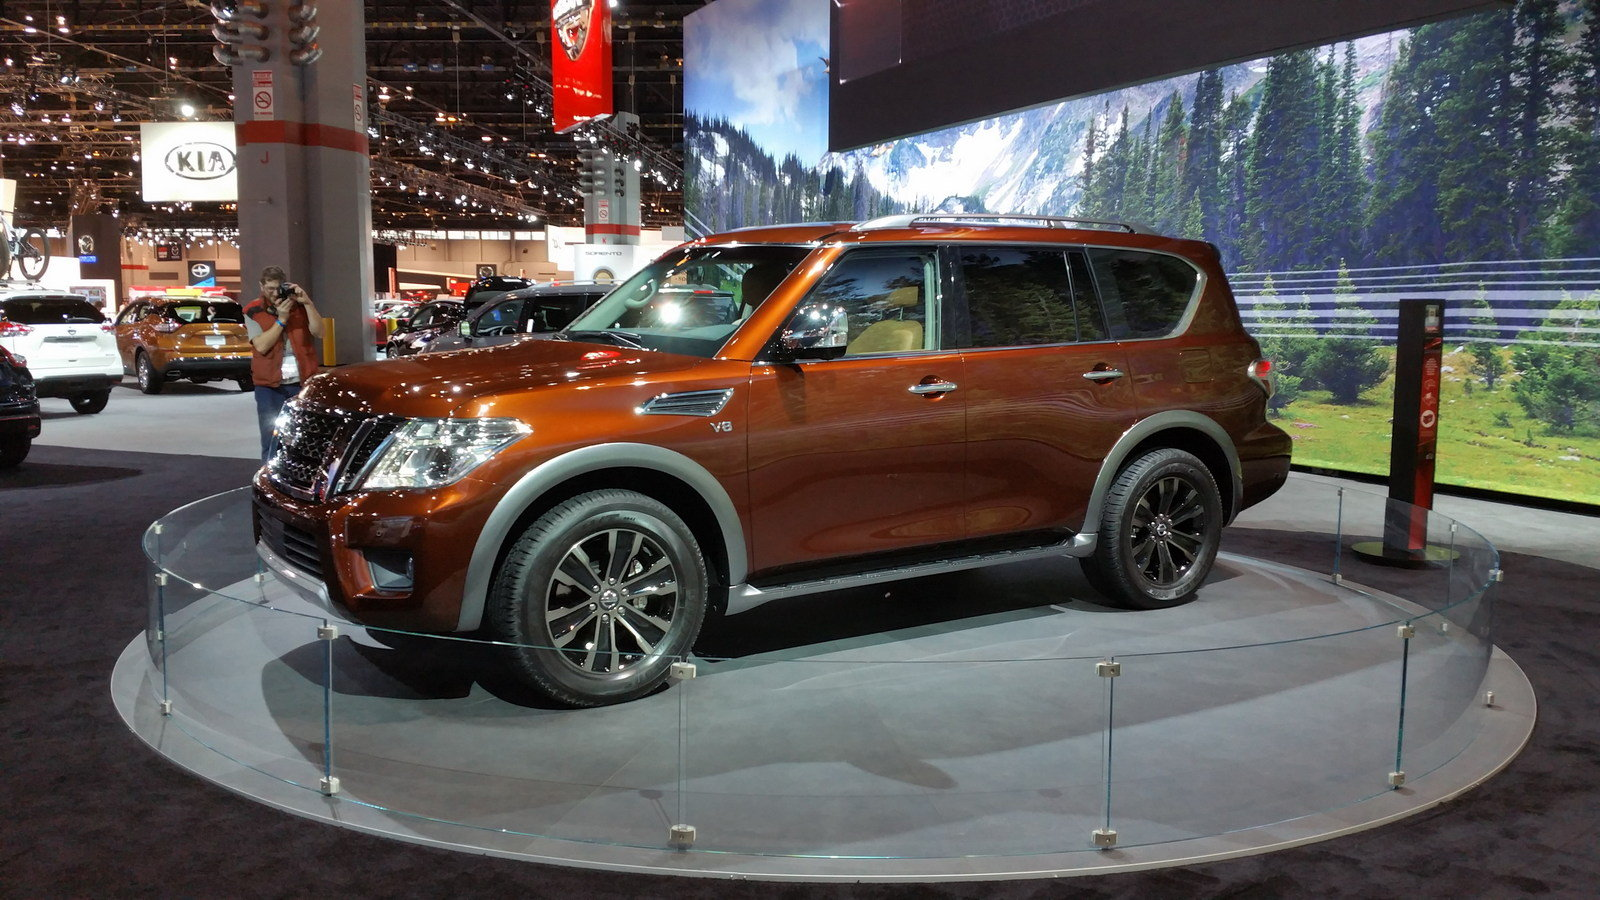 2017 nissan armada picture 666041 truck review top speed. Black Bedroom Furniture Sets. Home Design Ideas